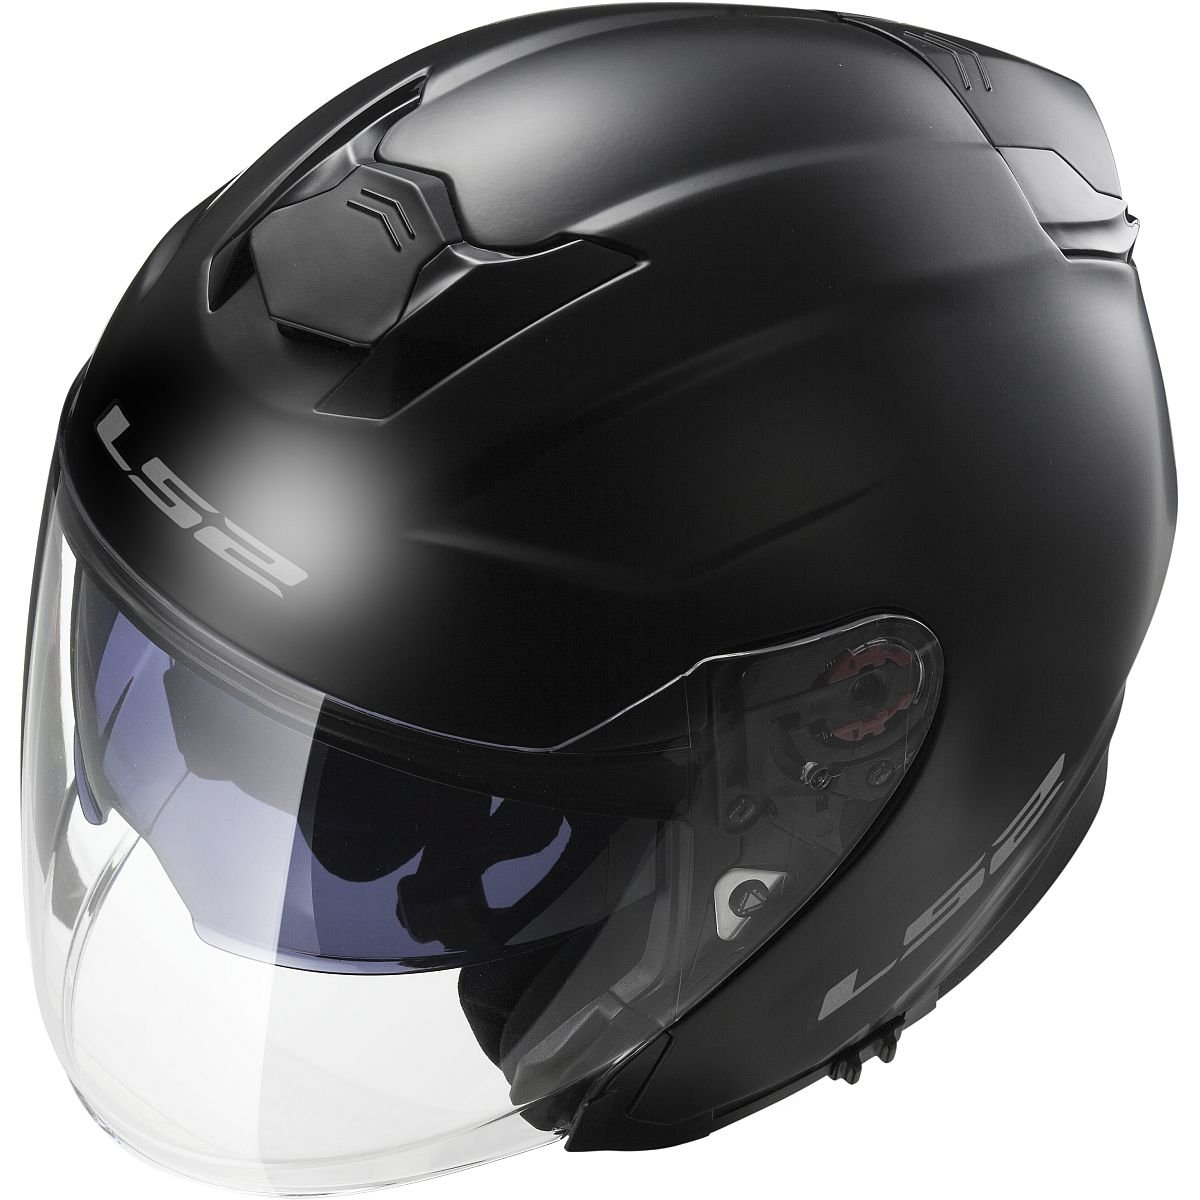 Amazon.com: LS2 Helmets Infinity Solid Open Face Off-Road Motorcycle Helmet with Sunshield (Gloss Black, X-Small): Automotive